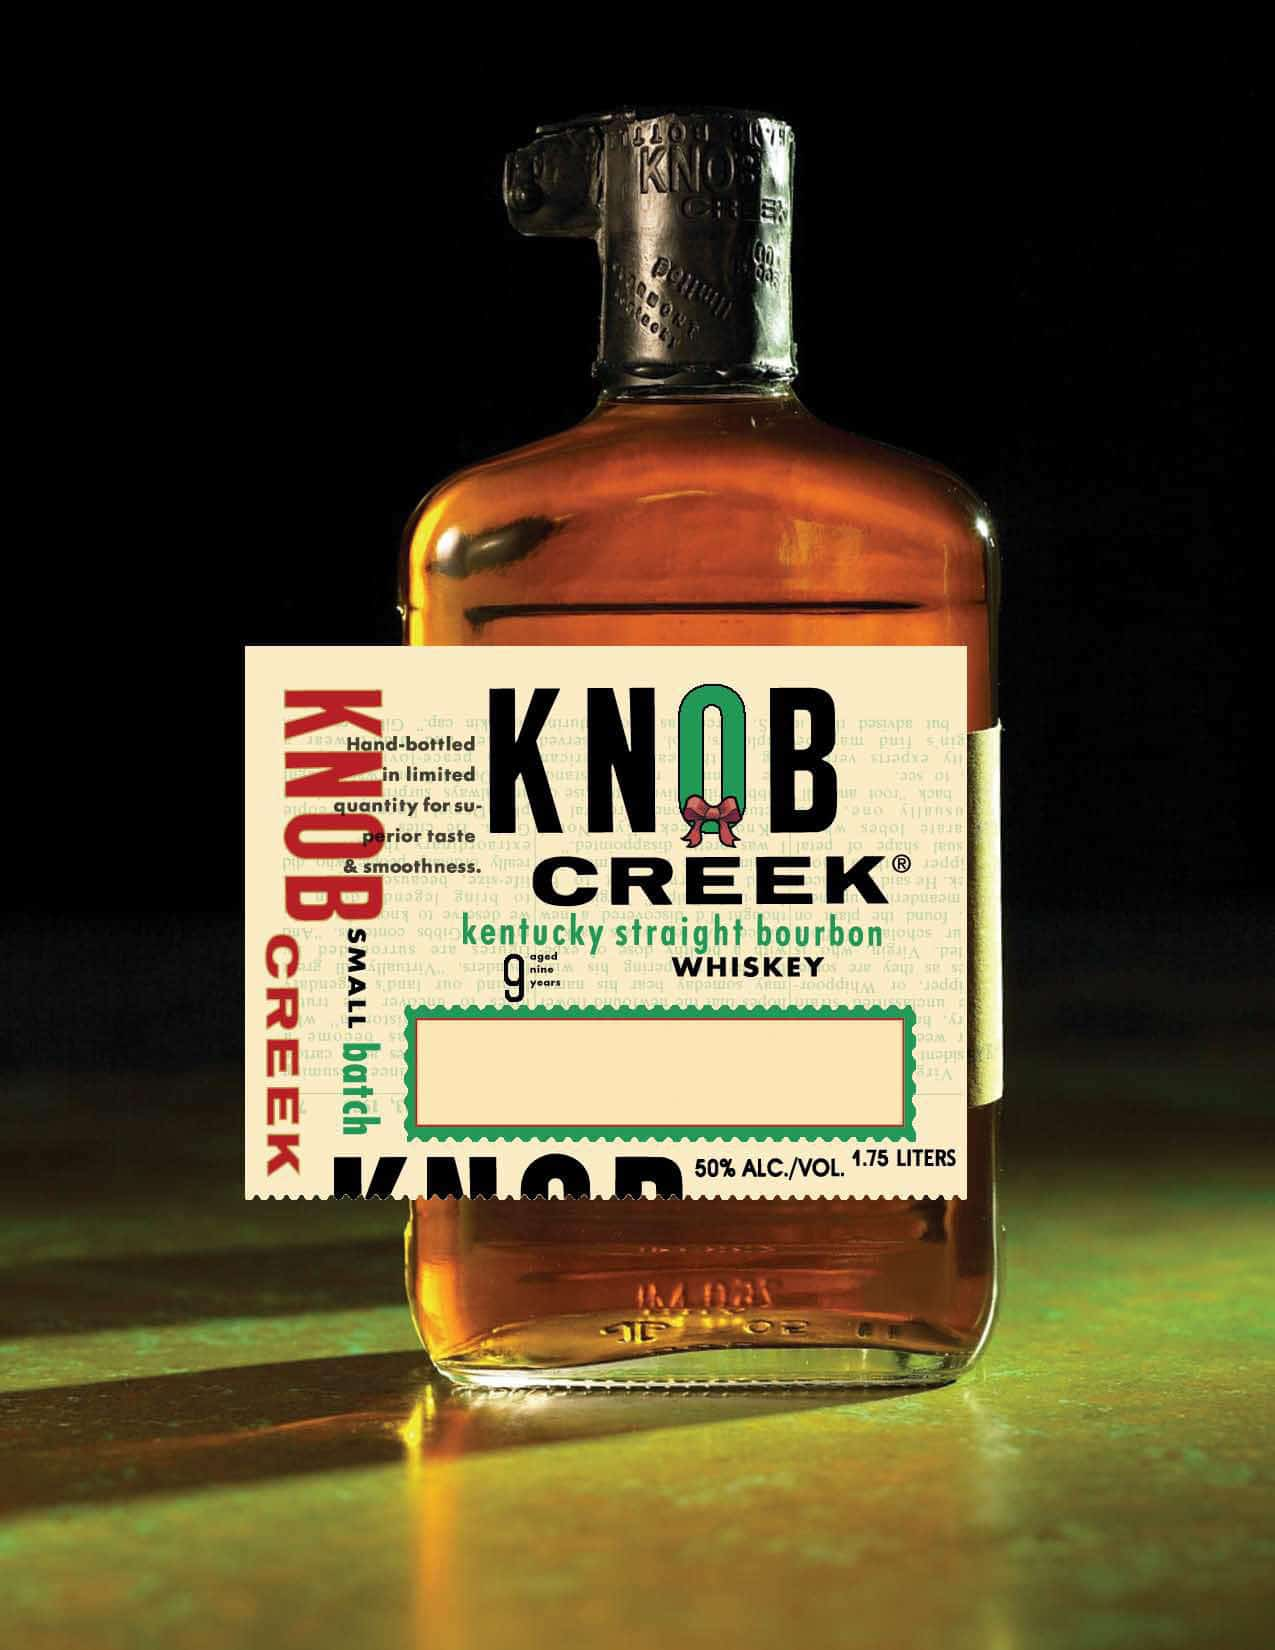 FREE Knob Creek Liquor Bottle Gift Personalized Labels